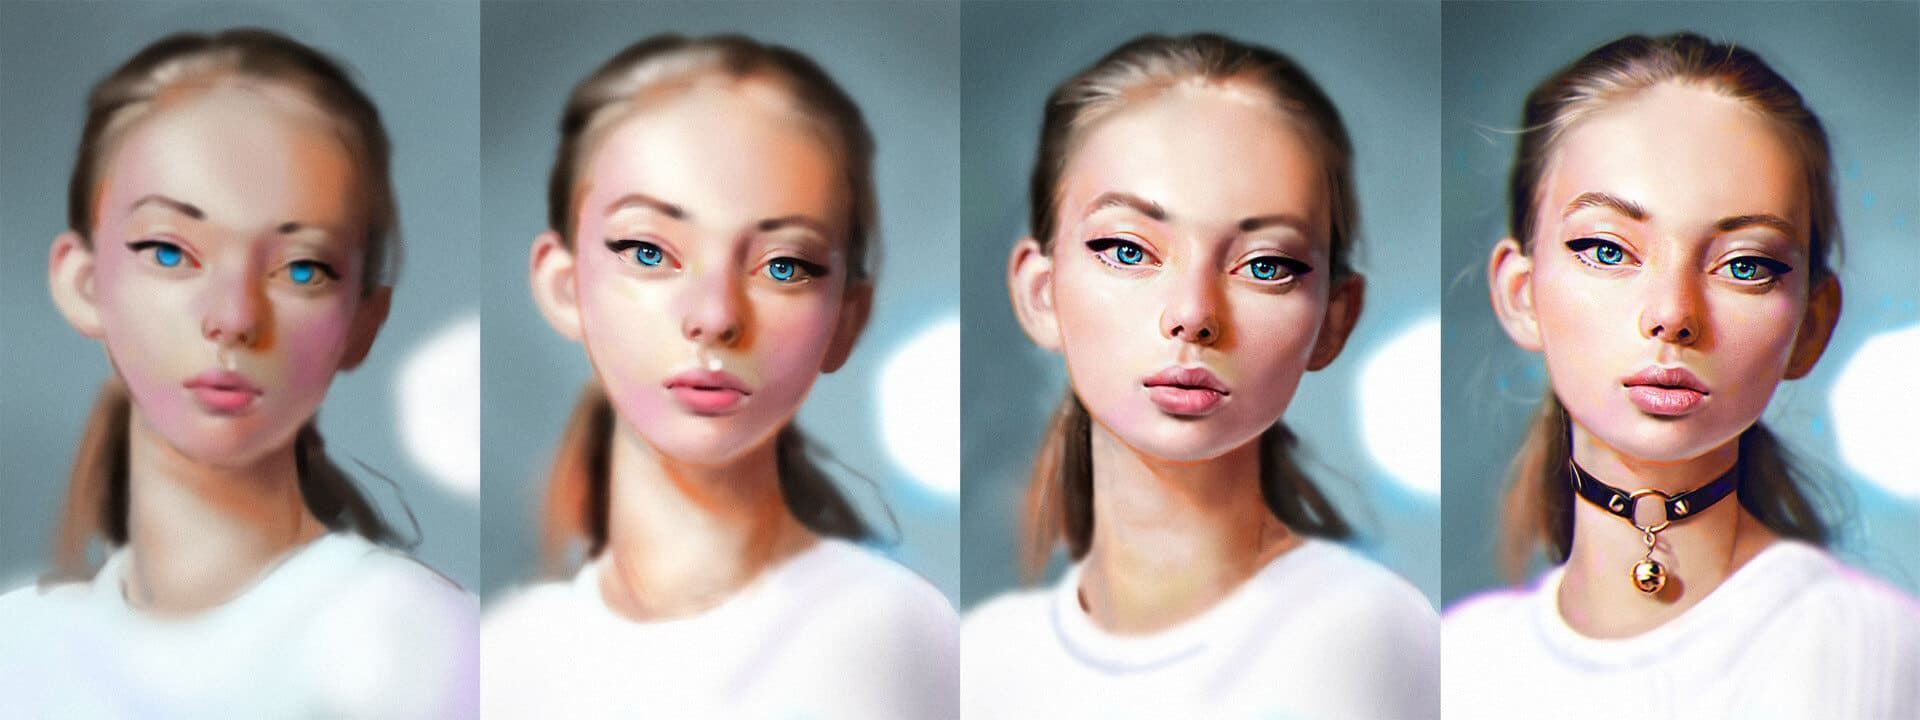 A sample art process by Rene Gorecki